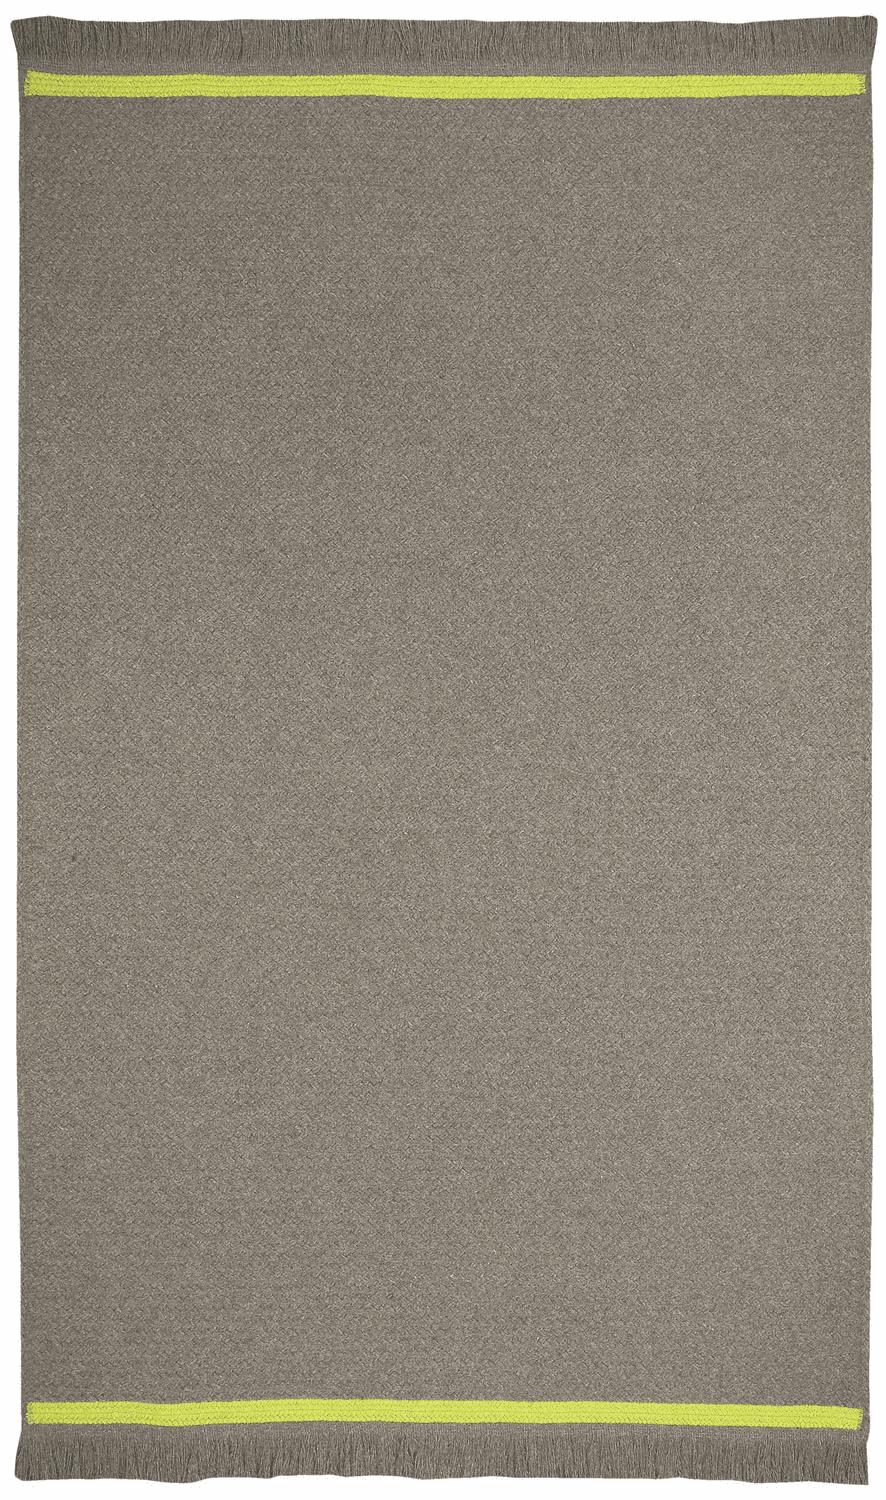 Hand-Braided Smoke Green Rug